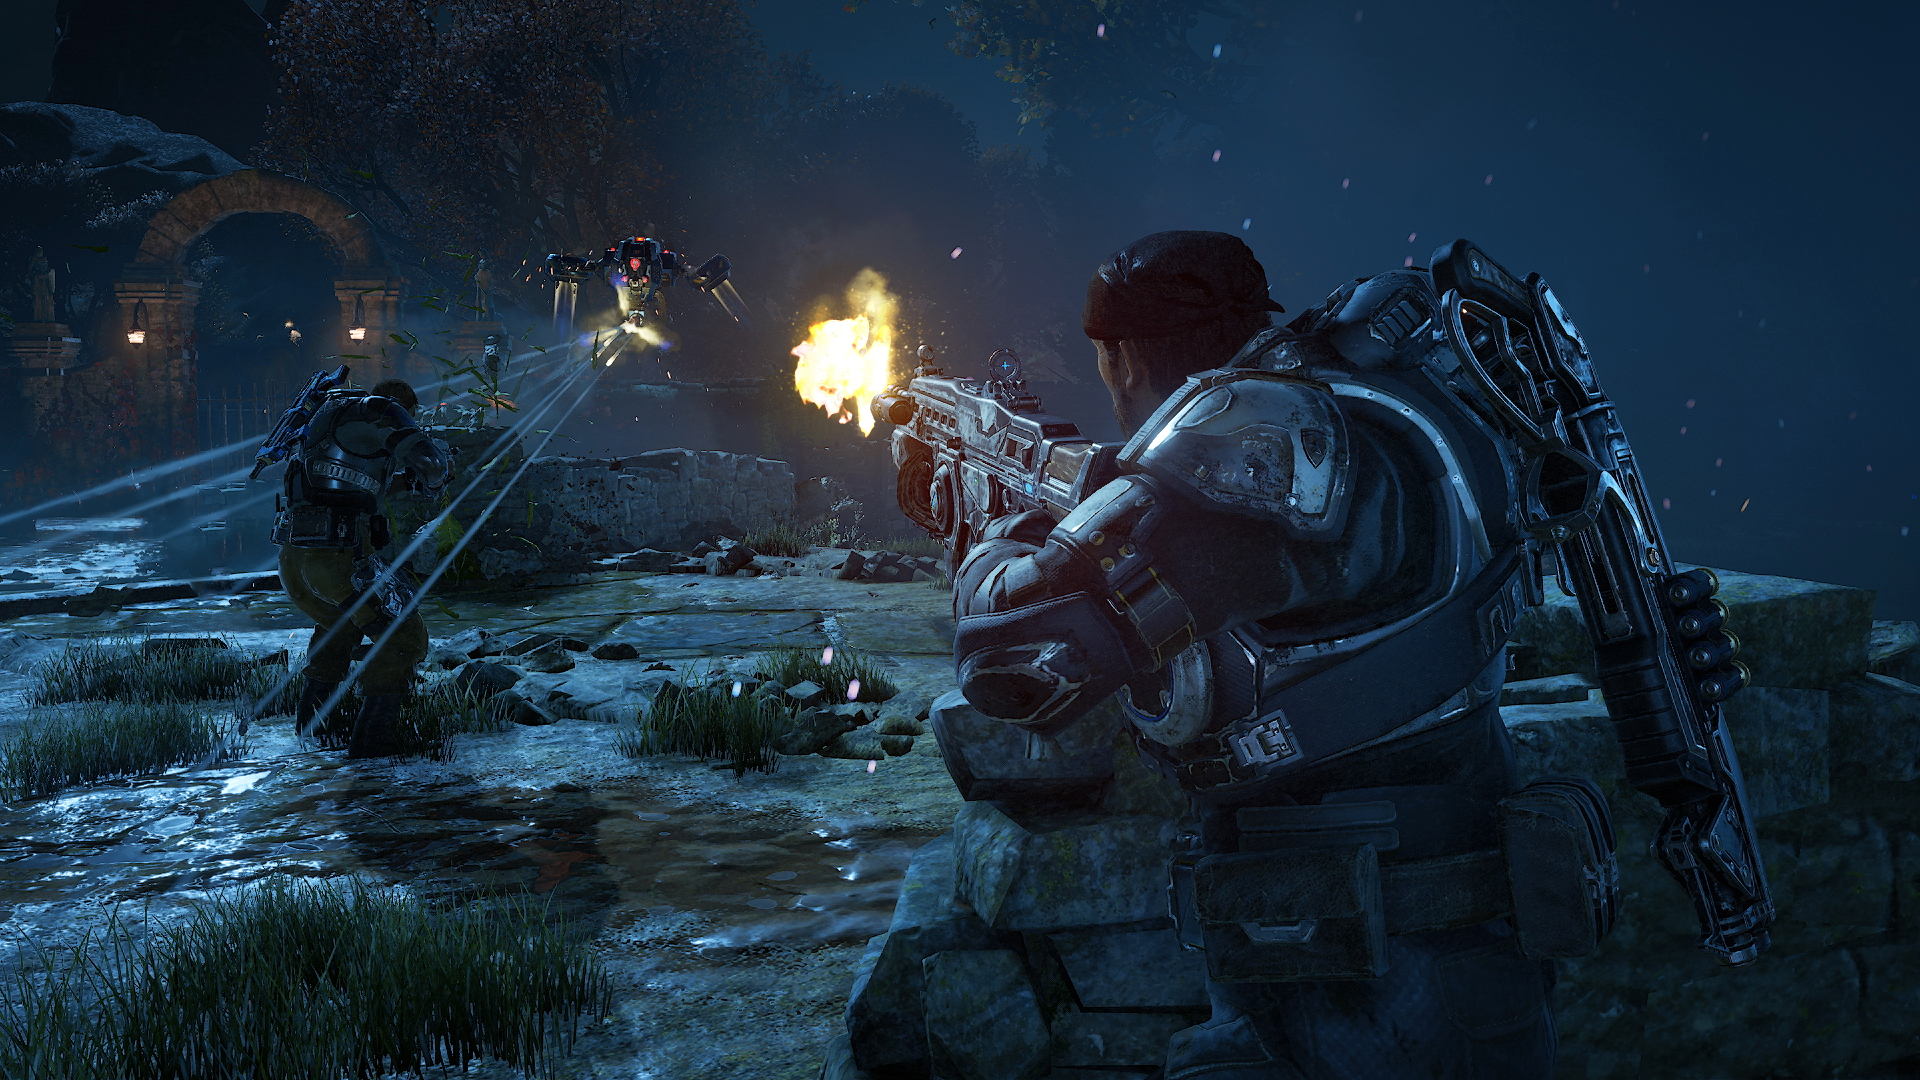 gears4_screenshot_guardian_combat